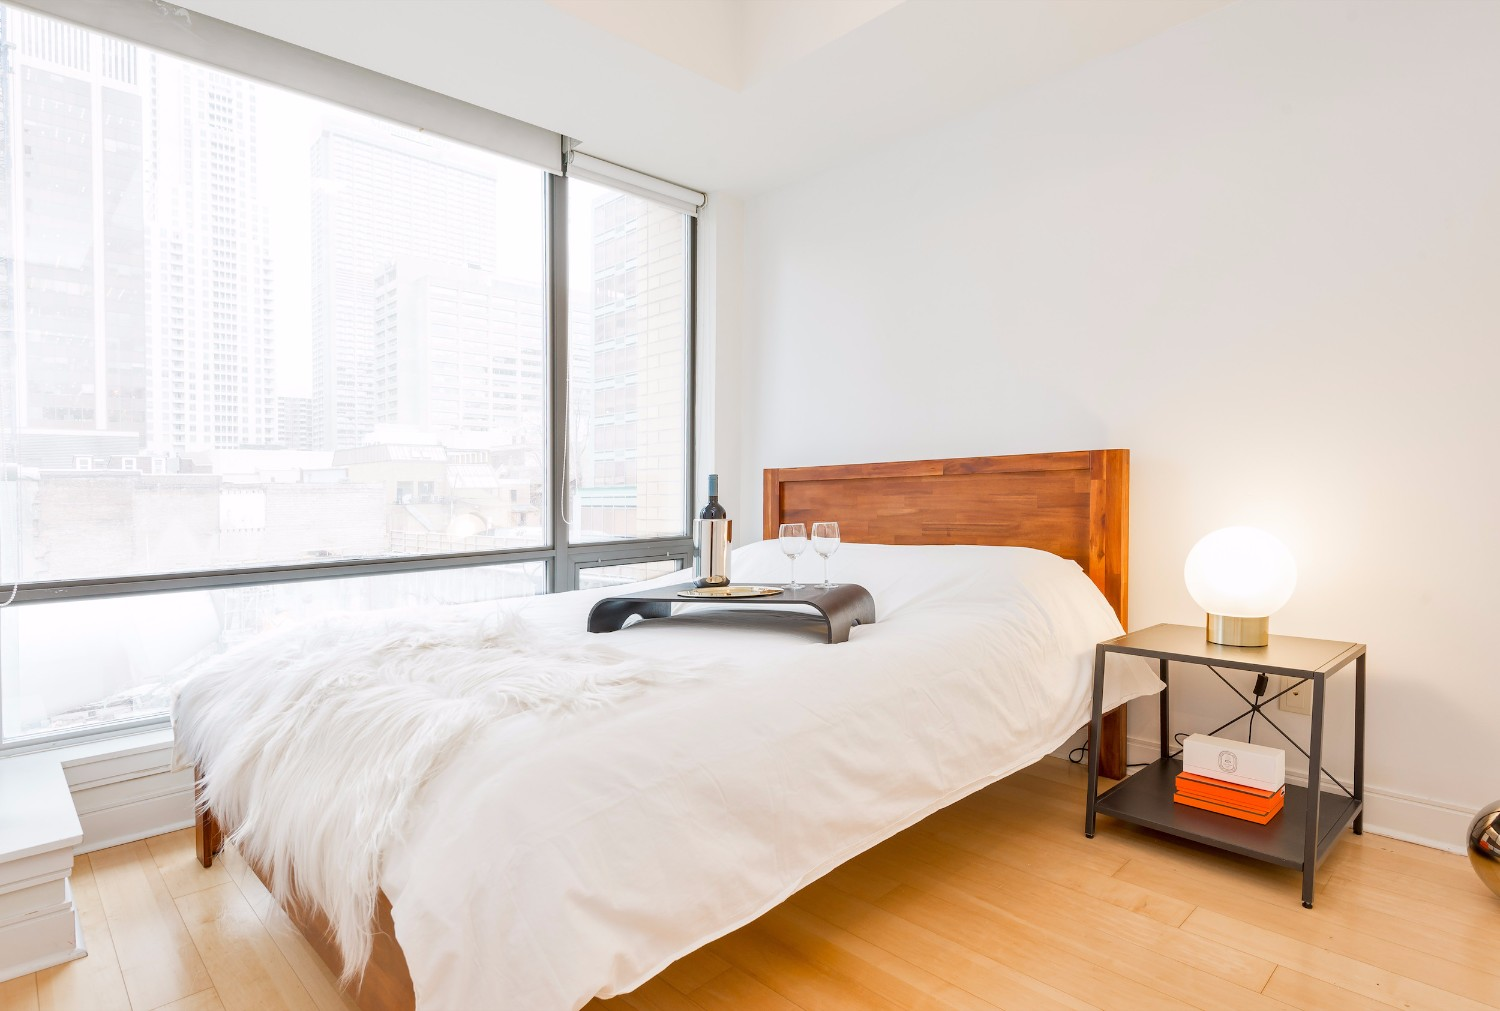 furnished apartments toronto Bedroom